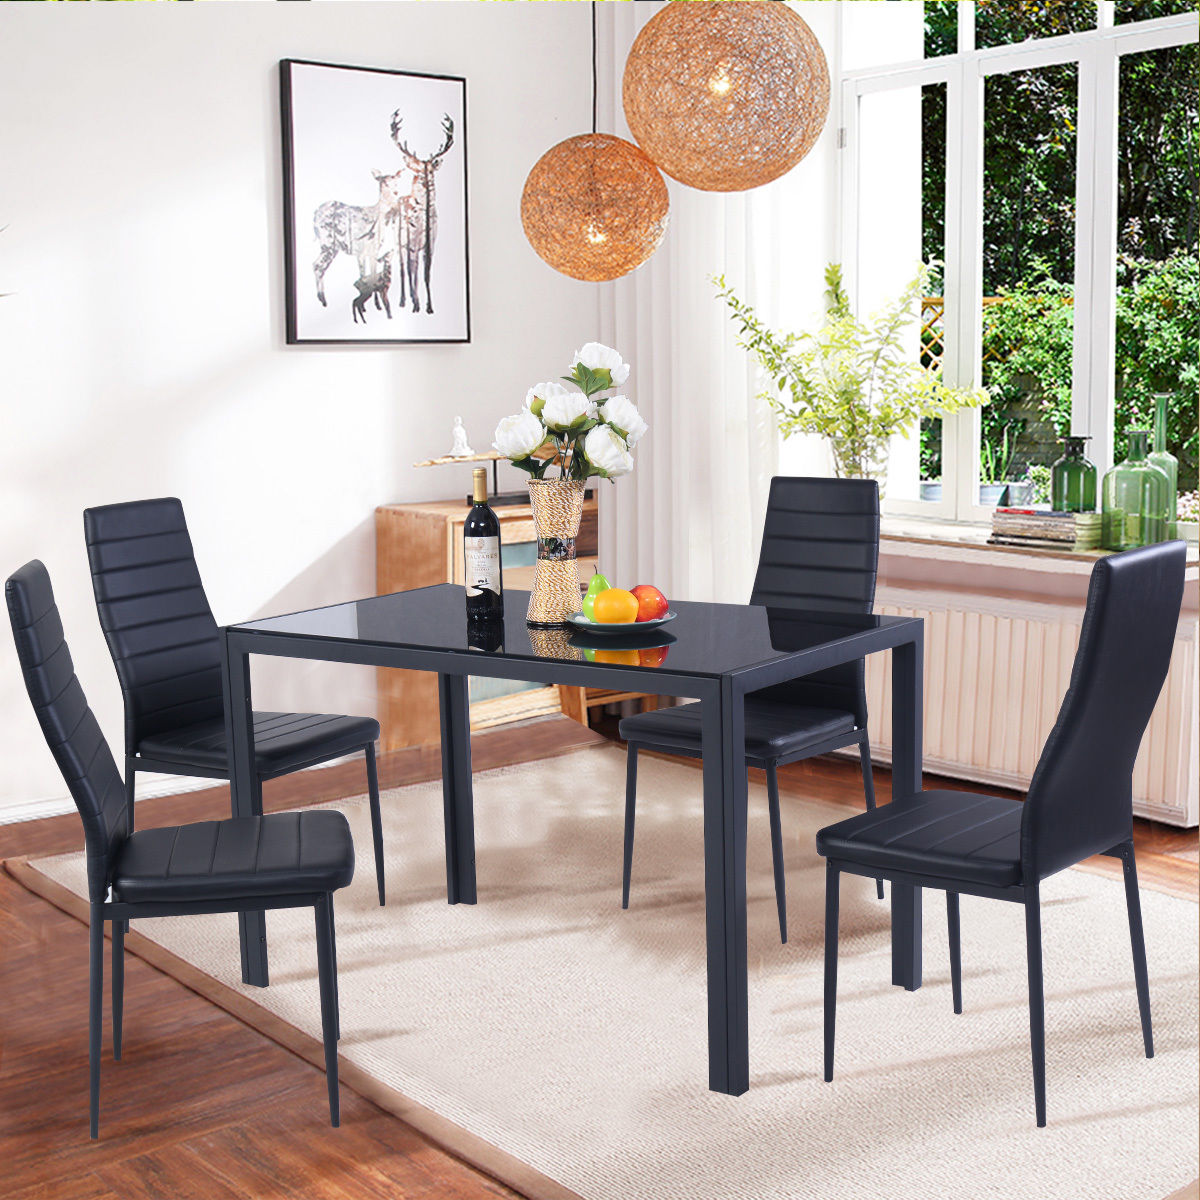 4 chairs in living room pictures of rooms ideas costway 5 piece kitchen dining set glass metal table and breakfast furniture walmart com